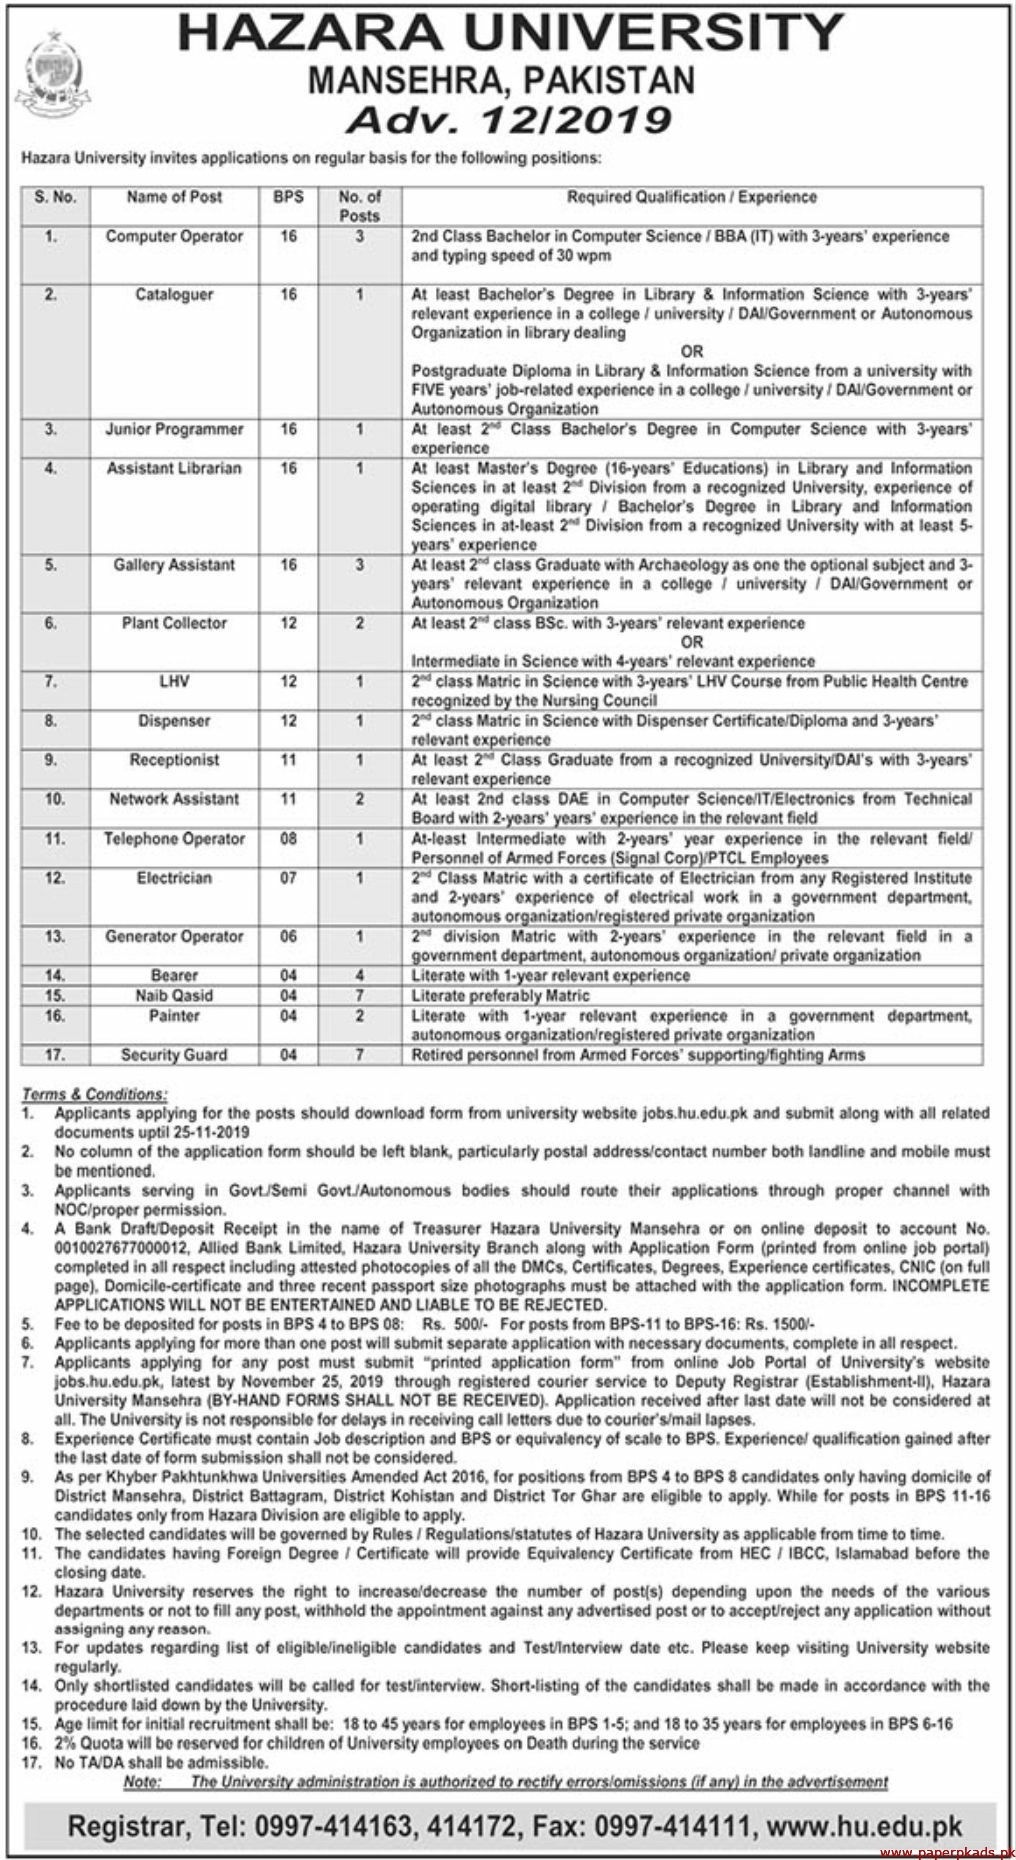 HAZARA University Mansehra Pakistan Jobs 2019 Latest